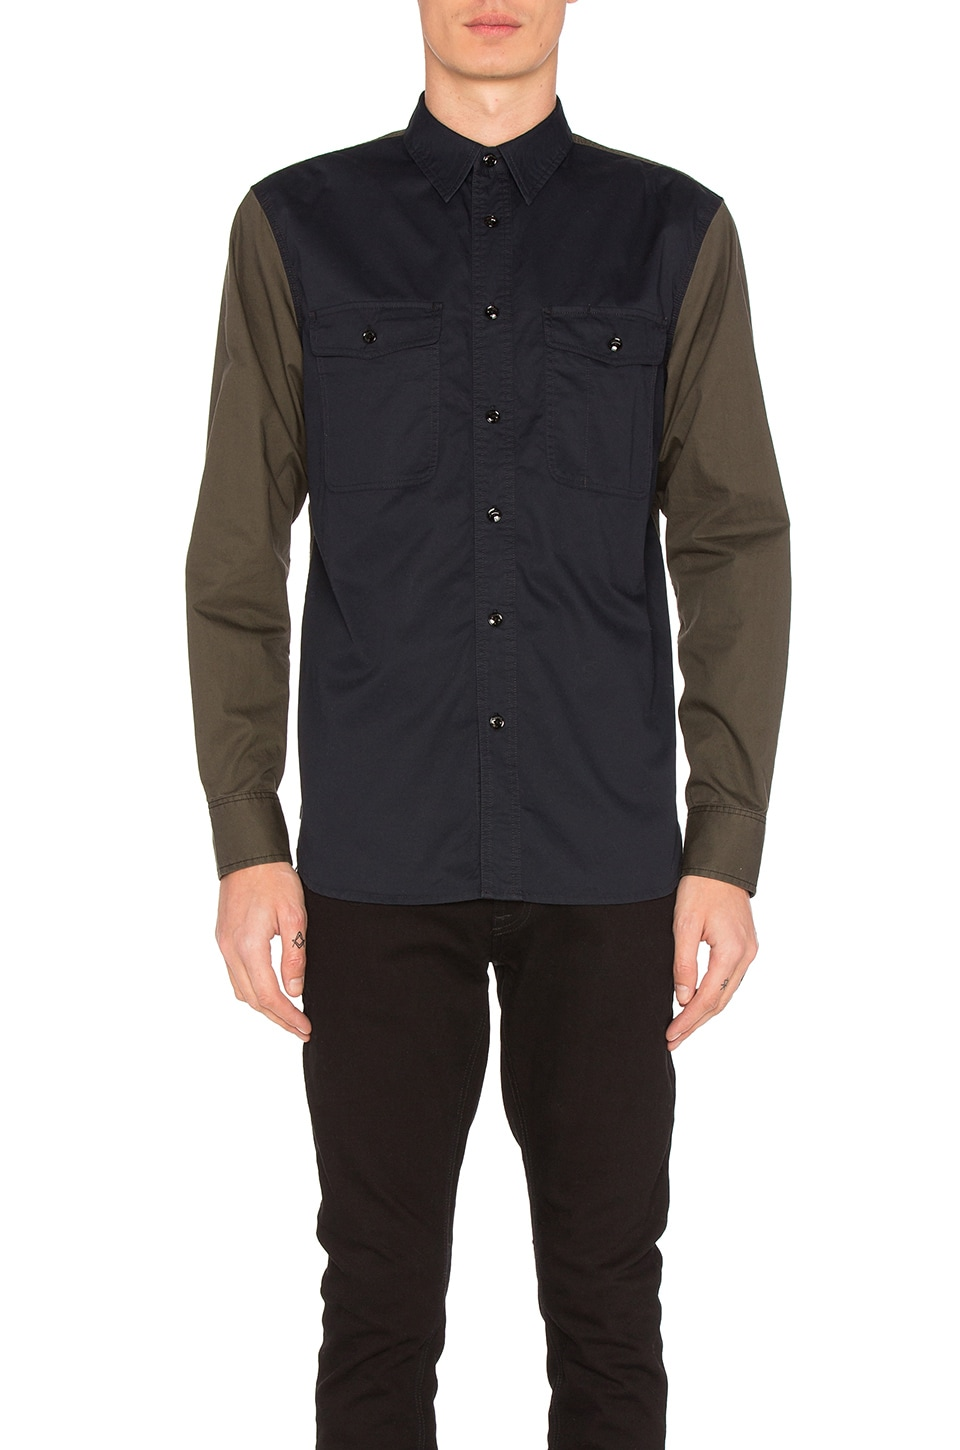 Jack Shirt by Rag & Bone